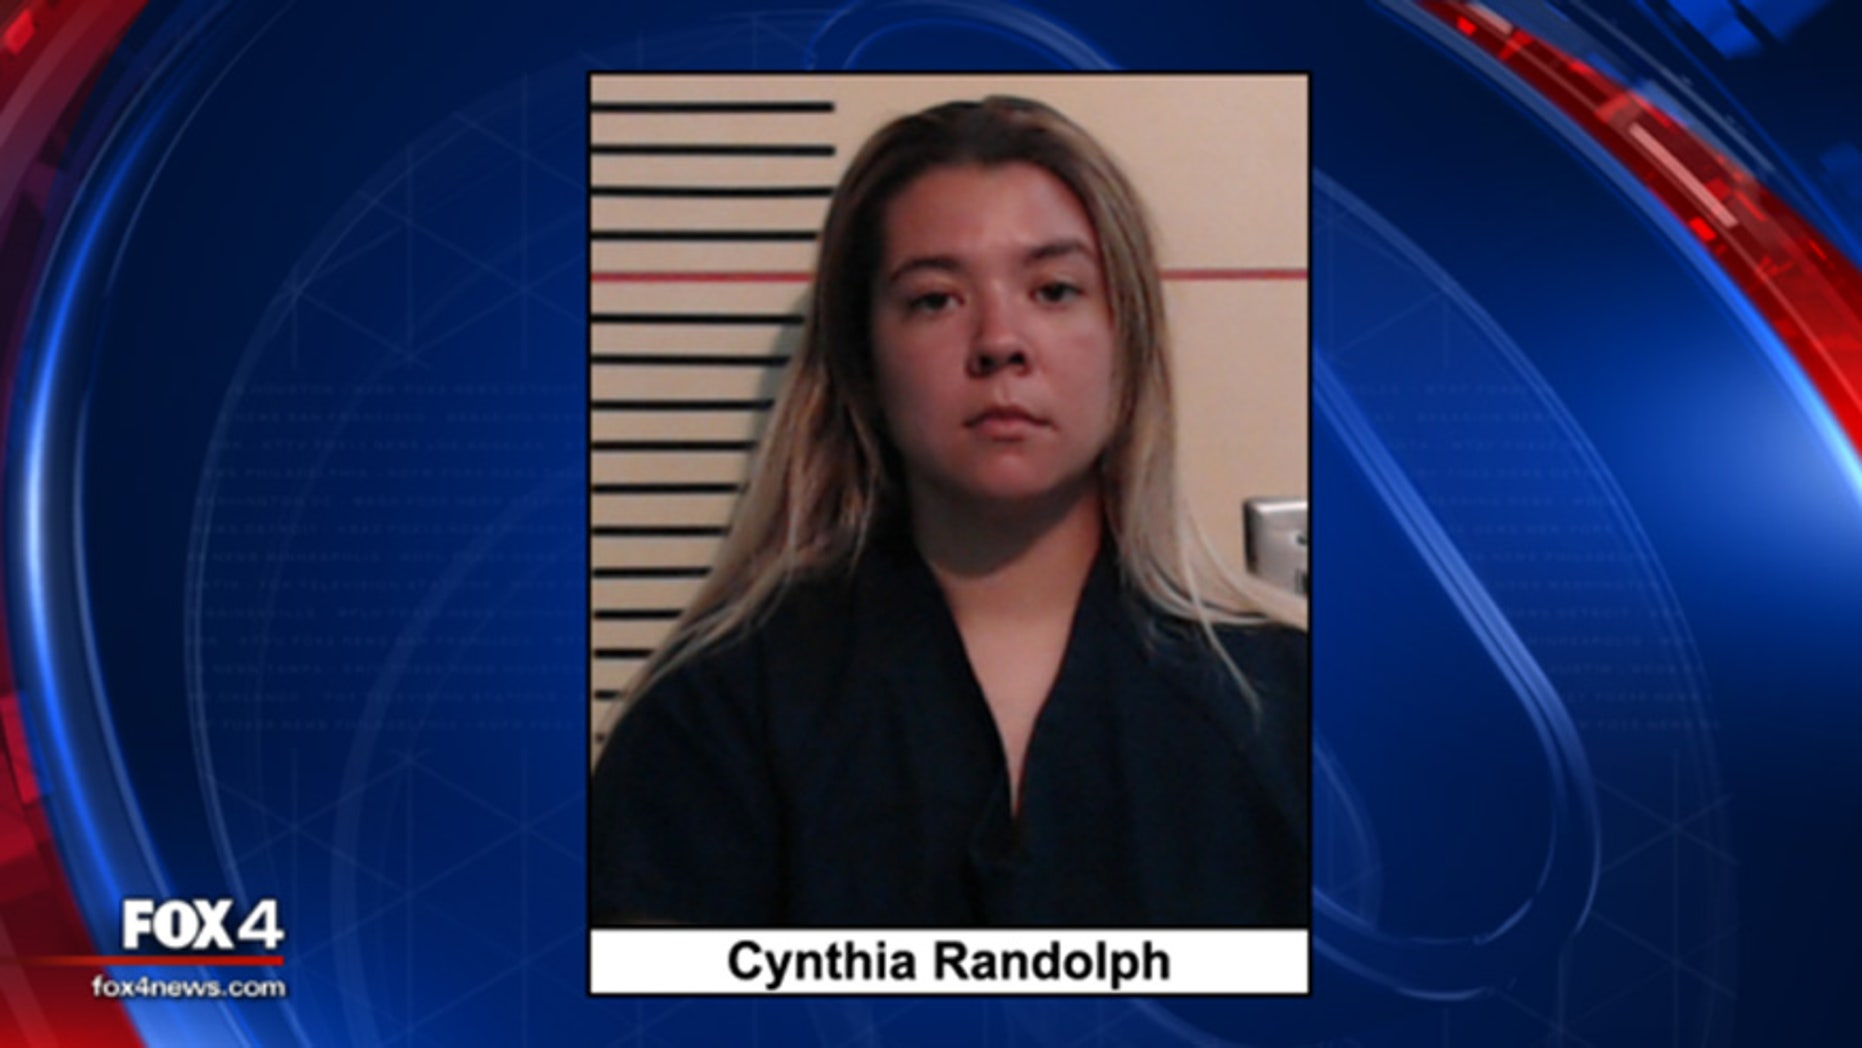 Cynthia Randolph is accused of leaving her two toddlers in a hot car in Texas.